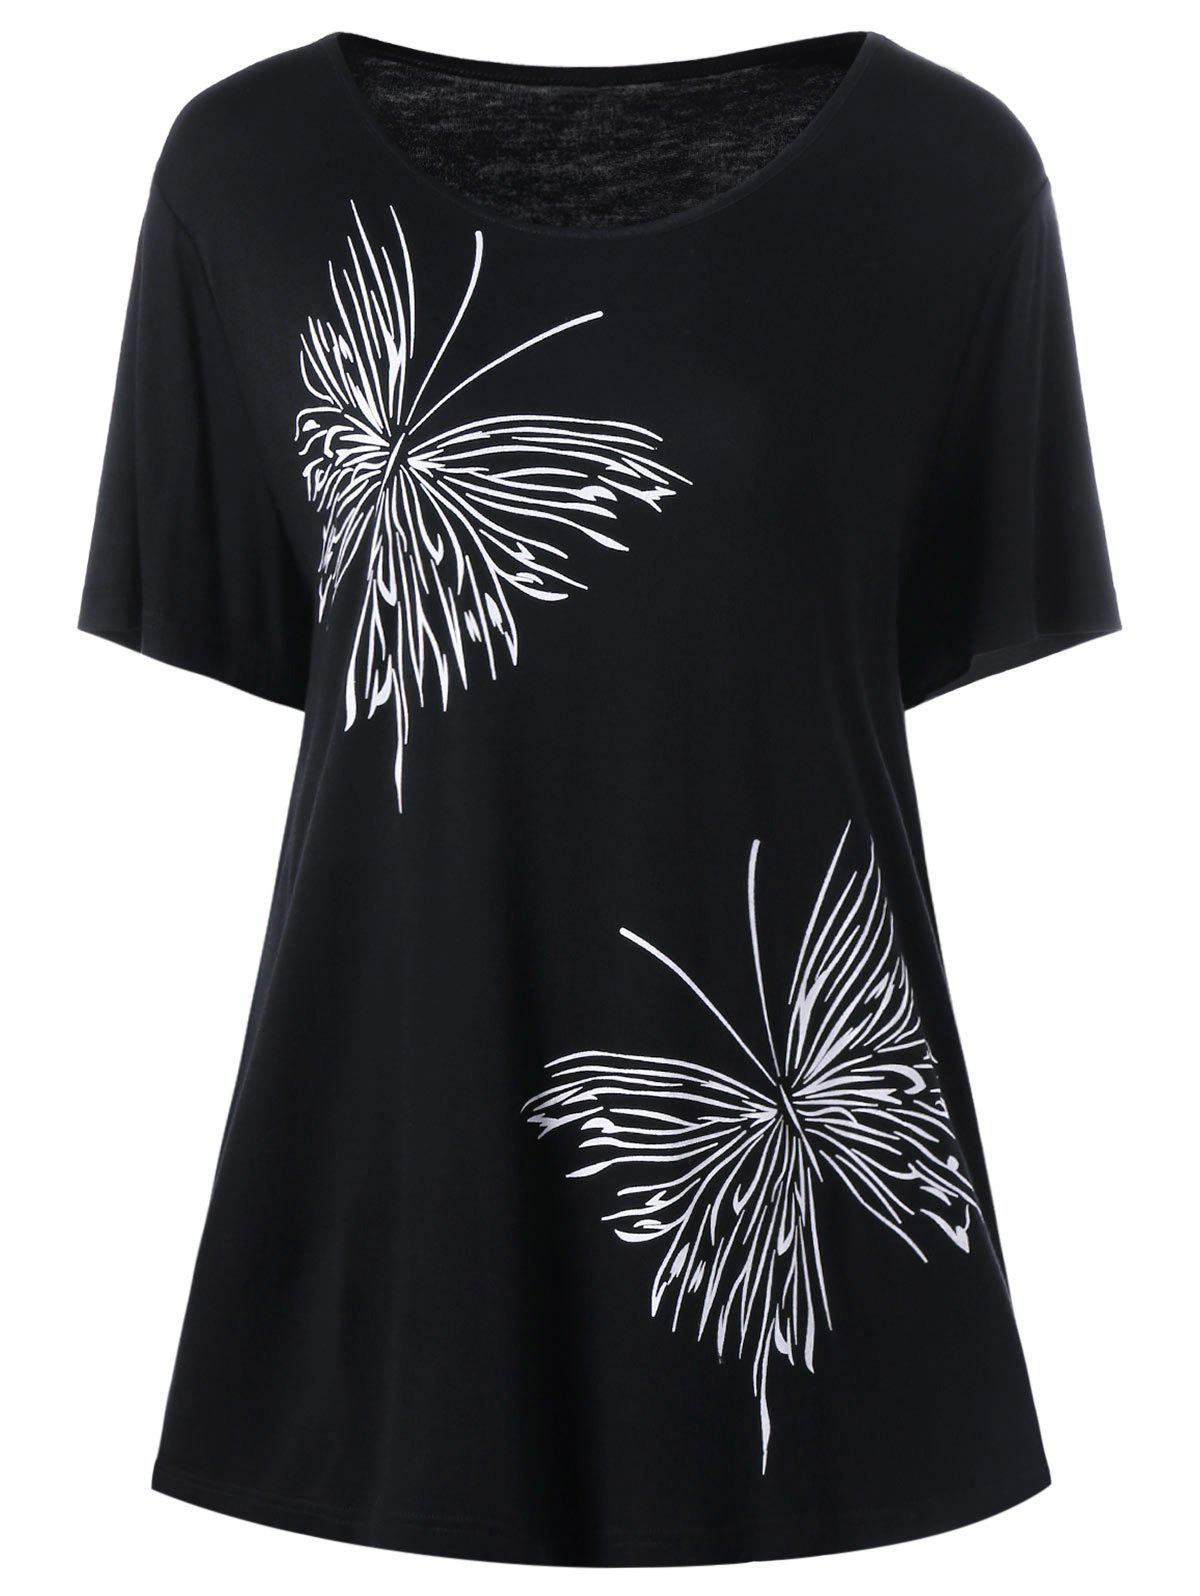 Plus Size Butterfly Graphic T Shirt 208353705